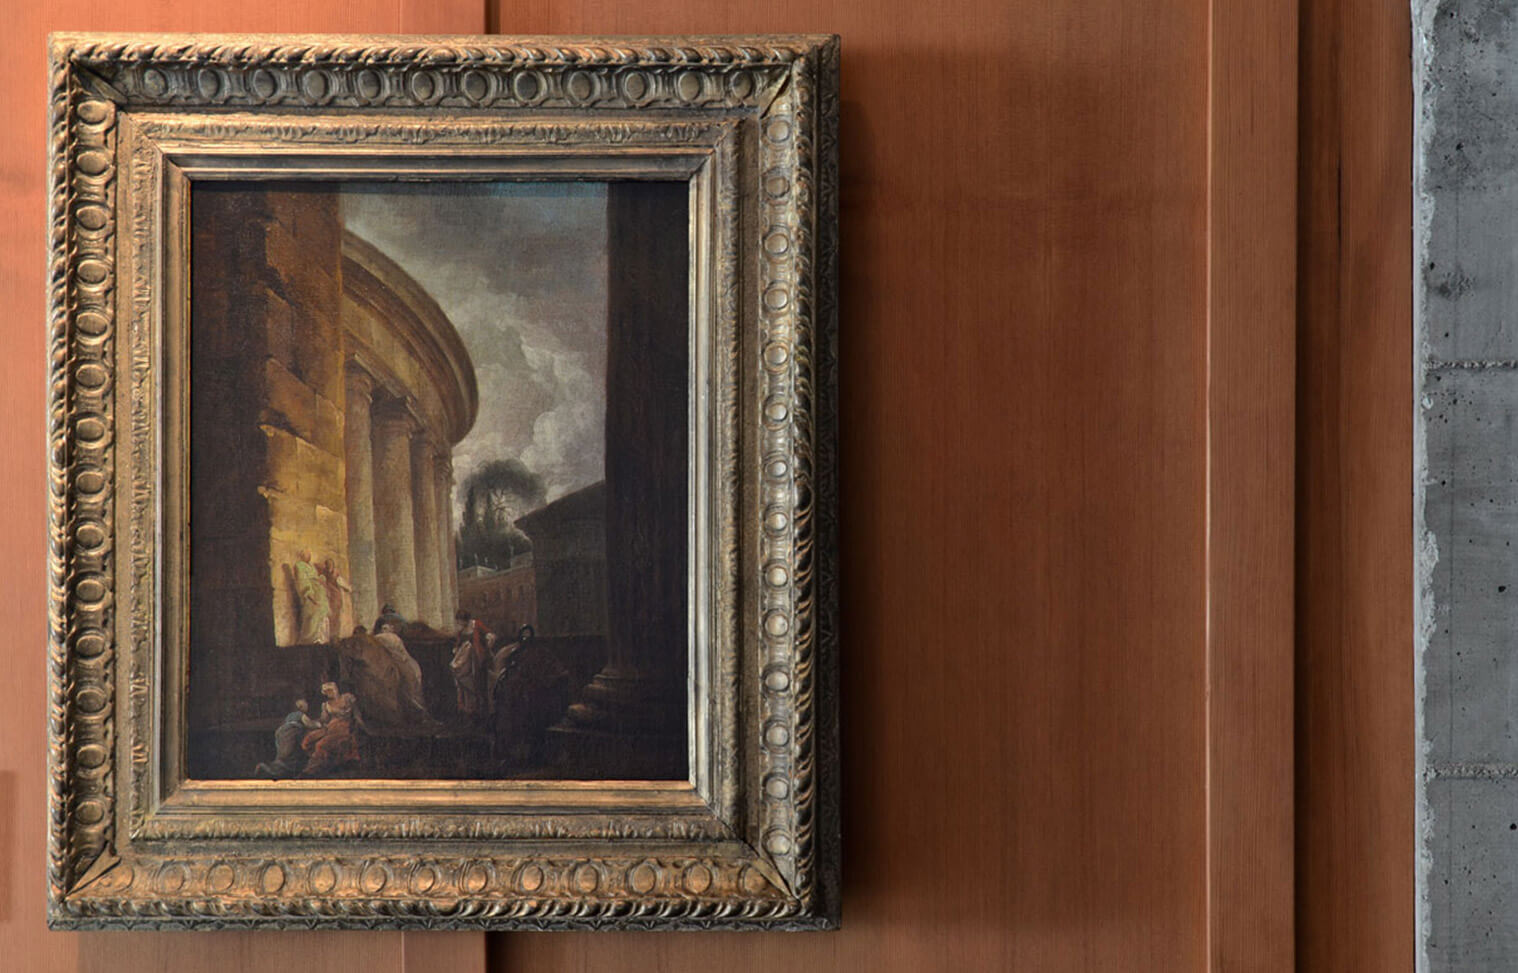 This 18th century capriccio by Hubert Robert hangs in Piraneseum's Painting Gallery.